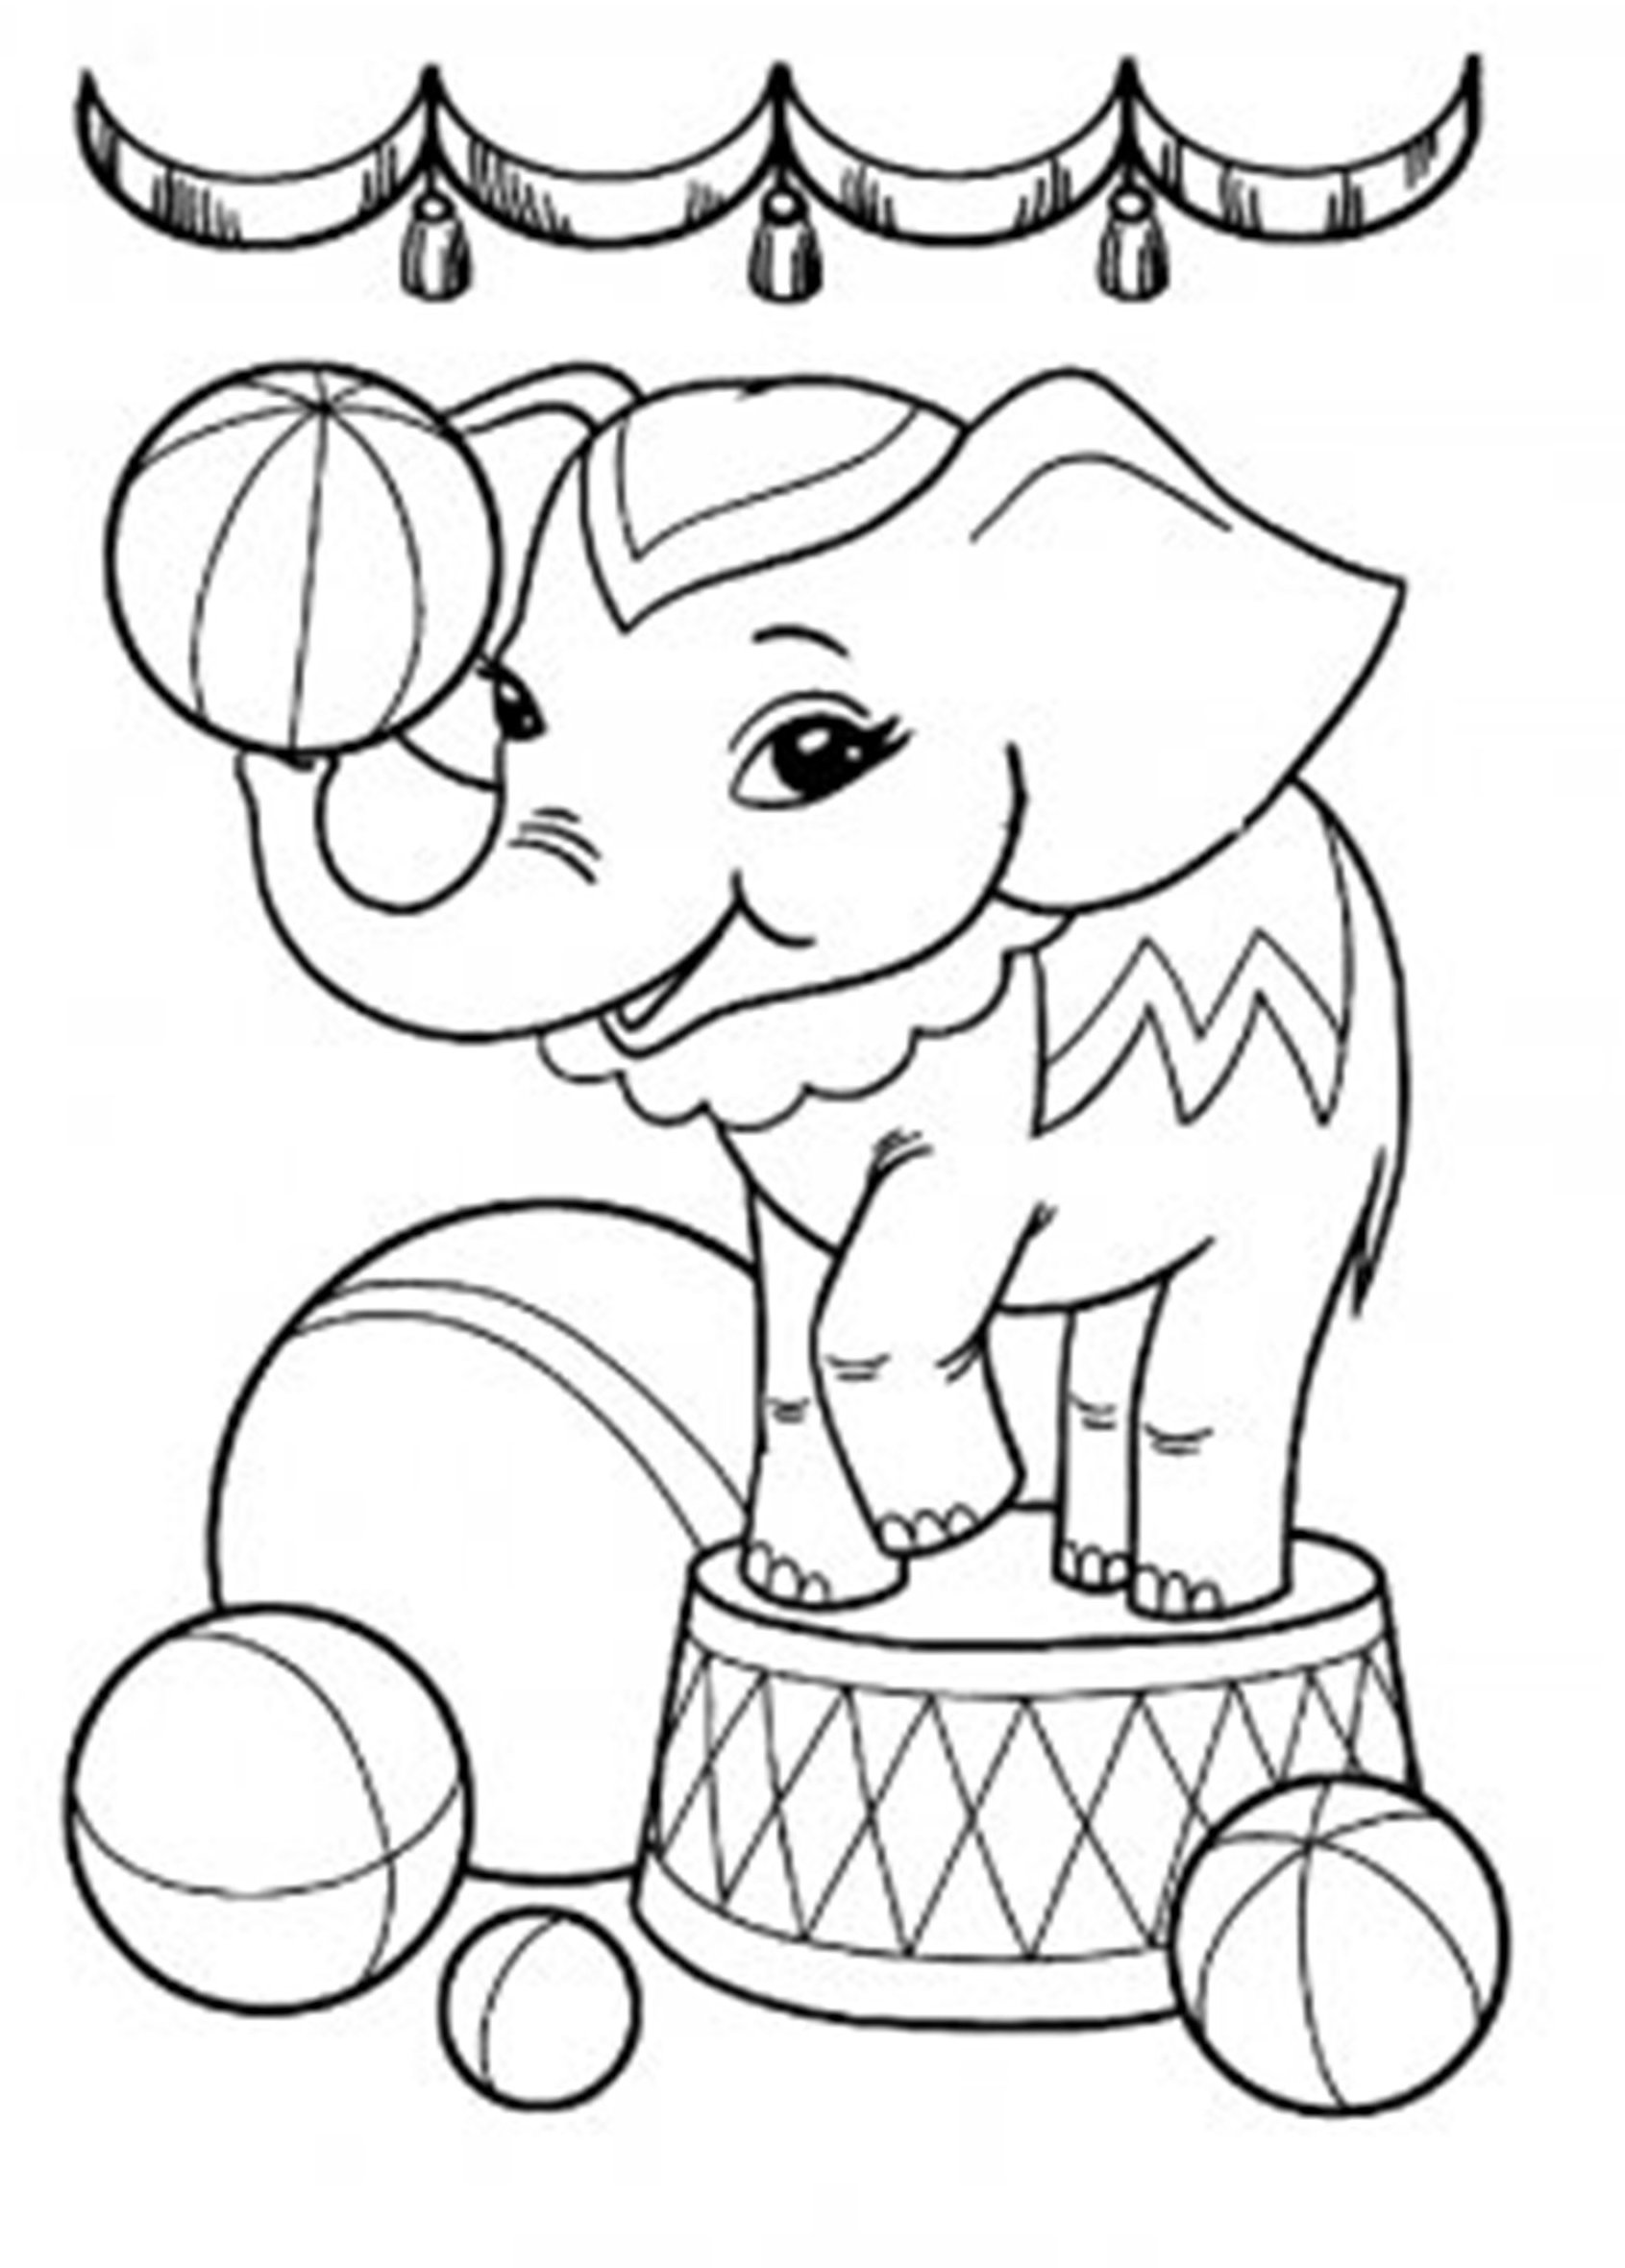 coloring printable pages for kids free printable lilo and stitch coloring pages for kids pages printable coloring for kids